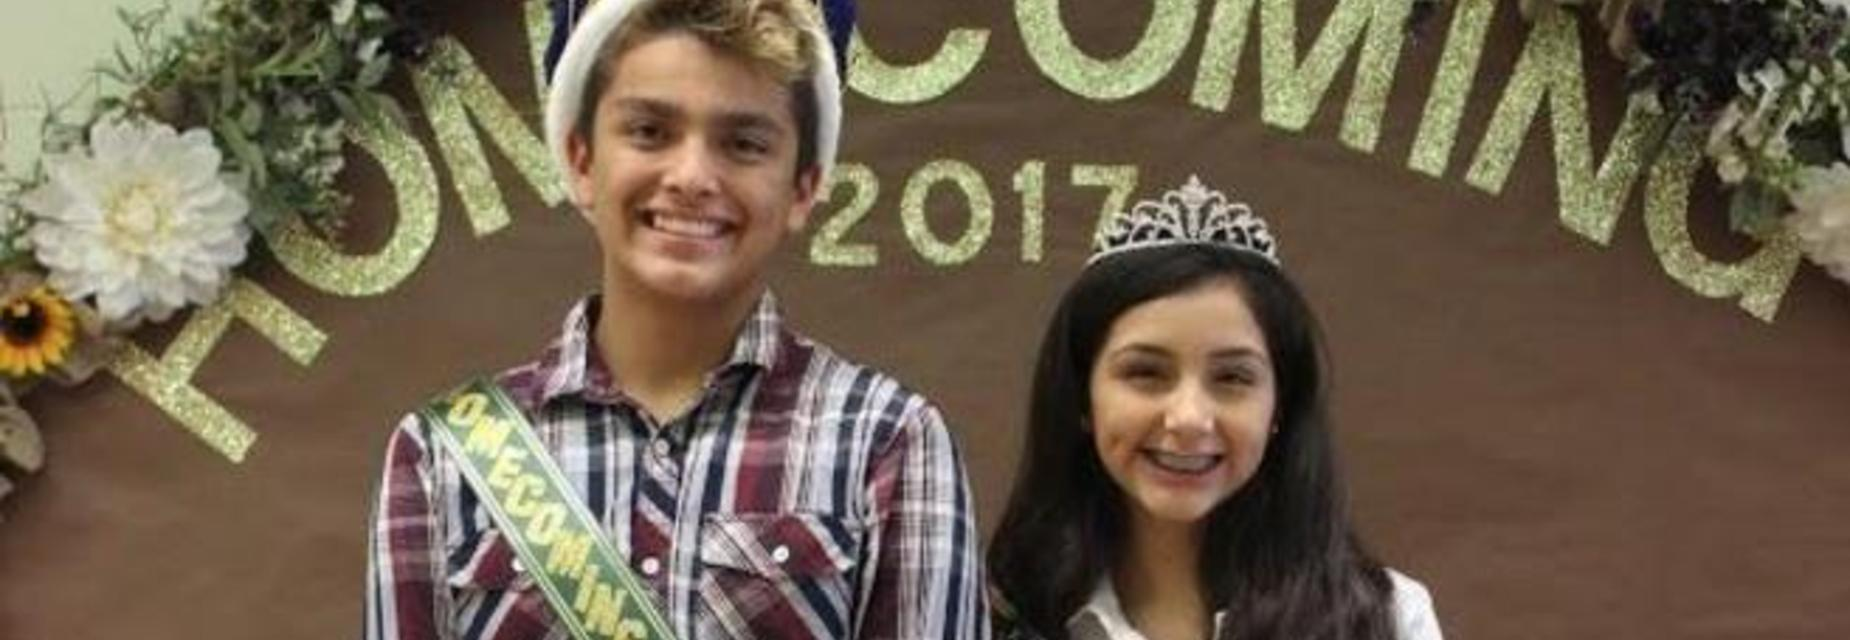 2017 - 2018 AMJH Homecoming King and Queen